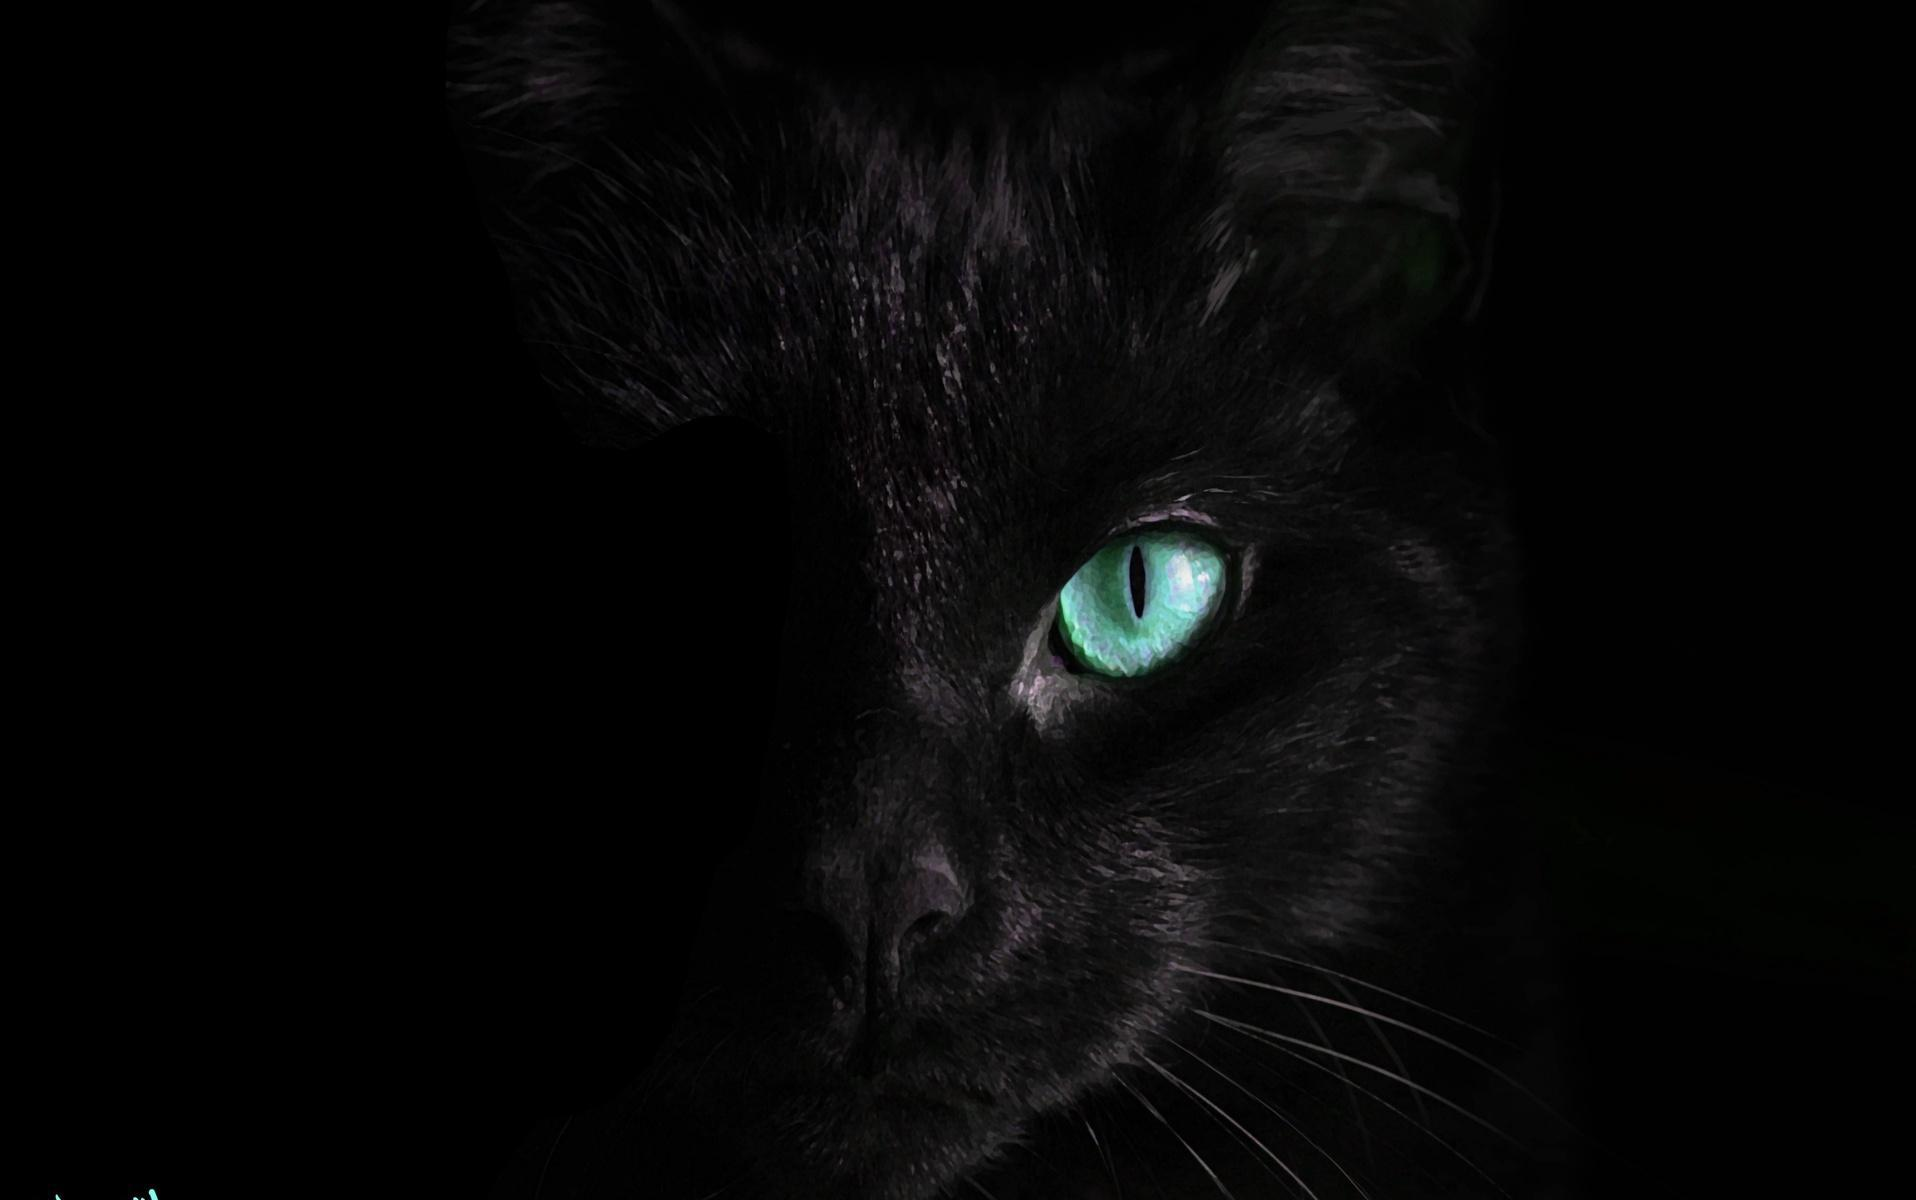 Black Cat Live Wallpaper For Android Apk Download